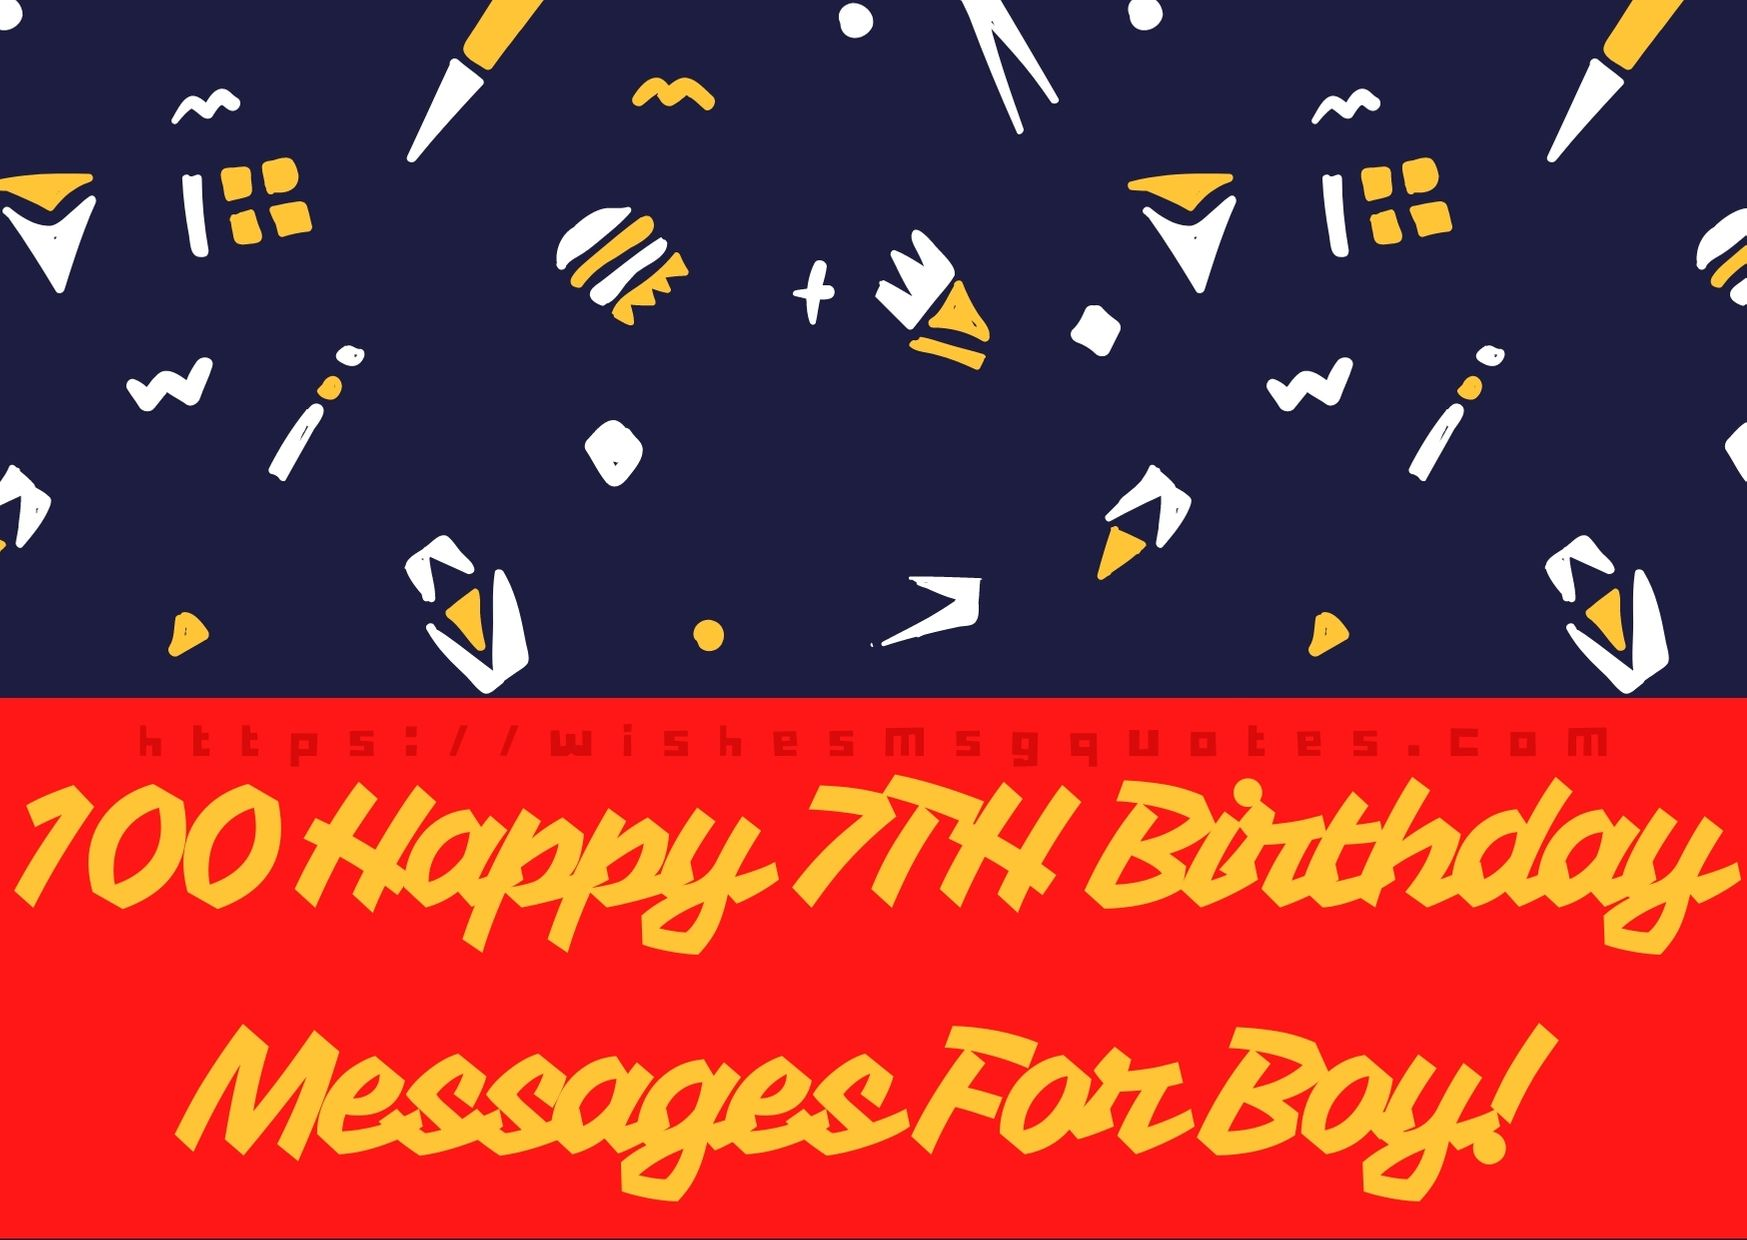 100 Happy 7th Birthday Messages For Boy